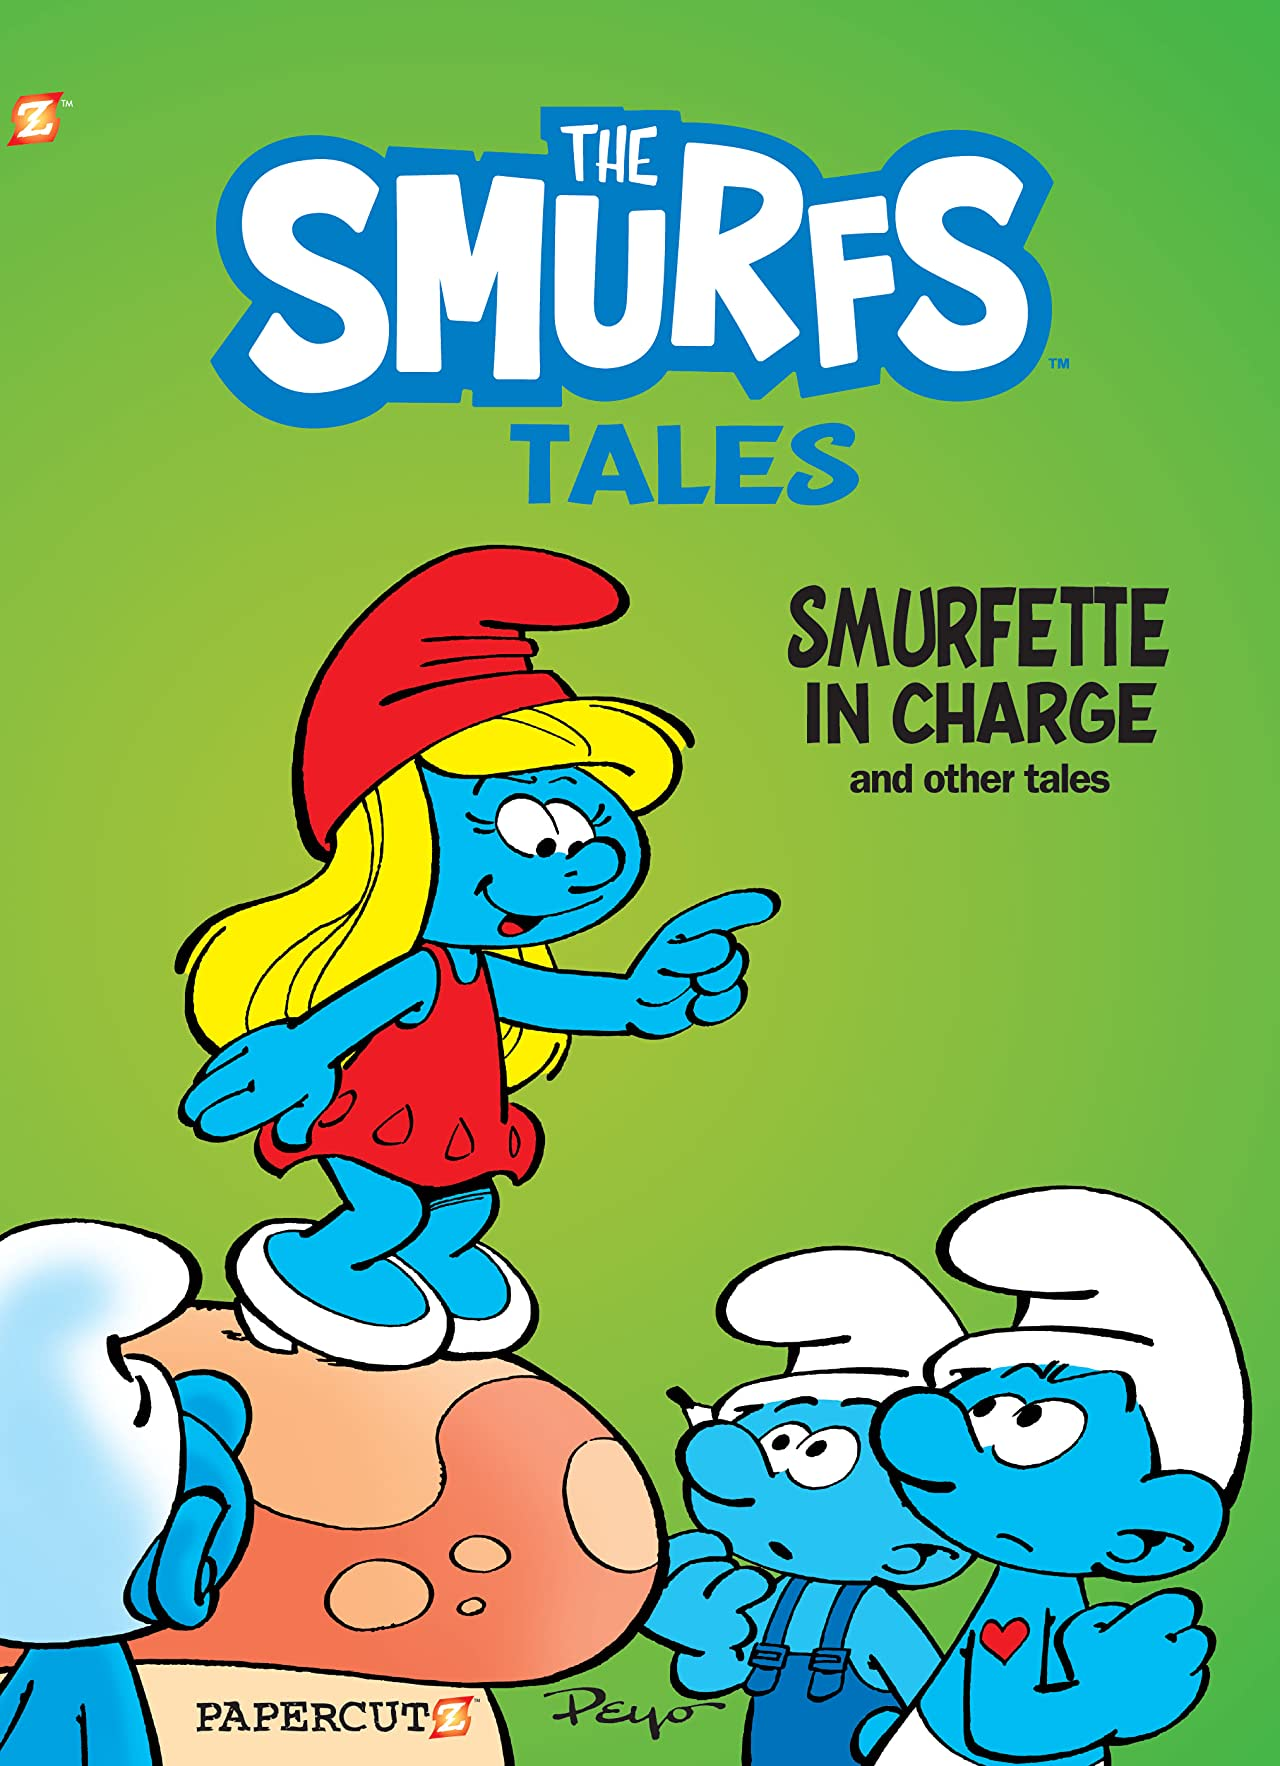 The Smurfs Tales Vol. 2: Smurfette in Charge and other Tales